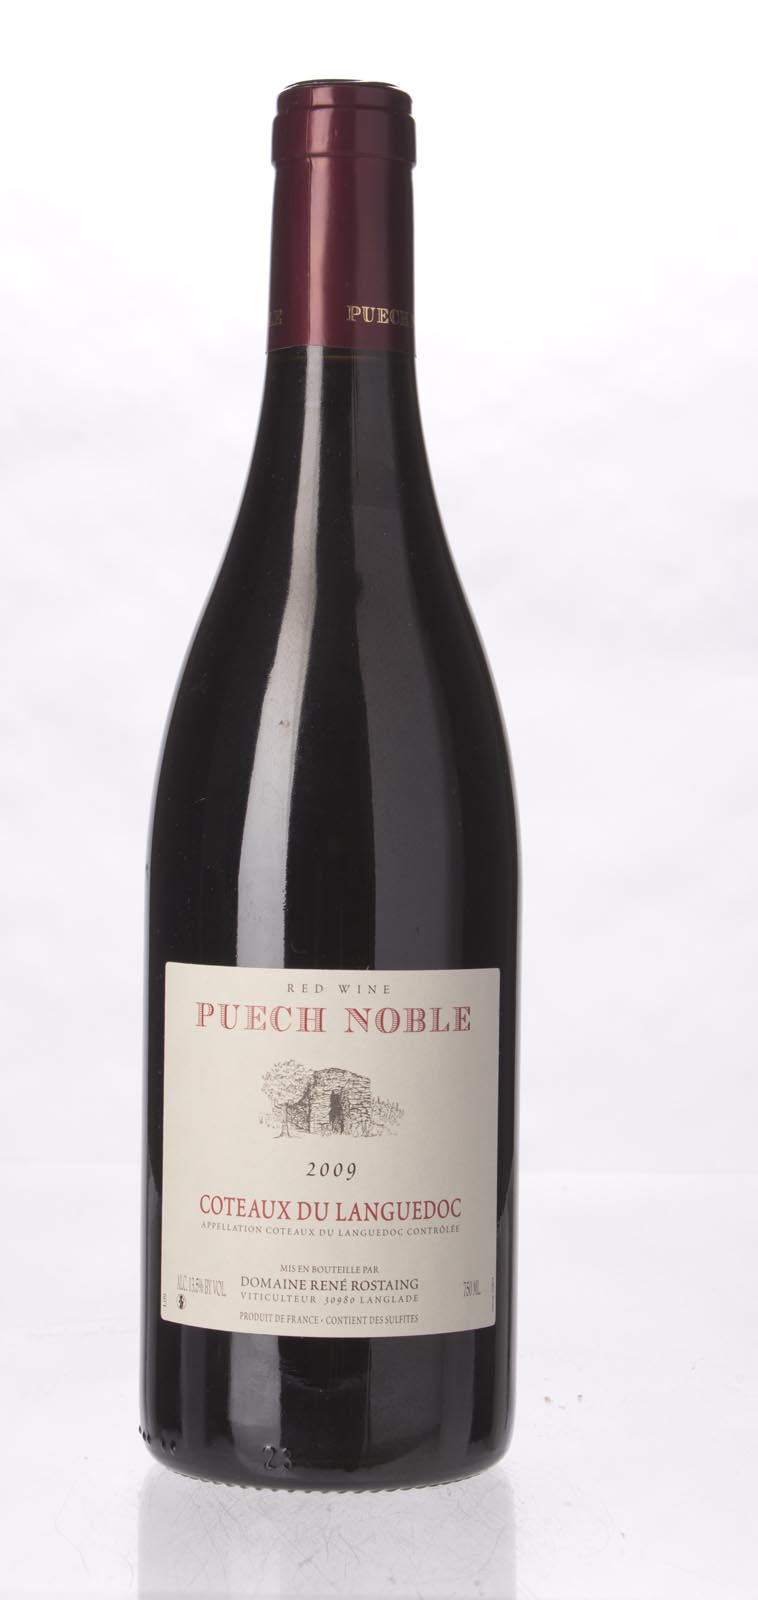 Domaine Puech Noble Coteaux du Languedoc (Rostaing) 2009, 750ml (WA90) from The BPW - Merchants of rare and fine wines.